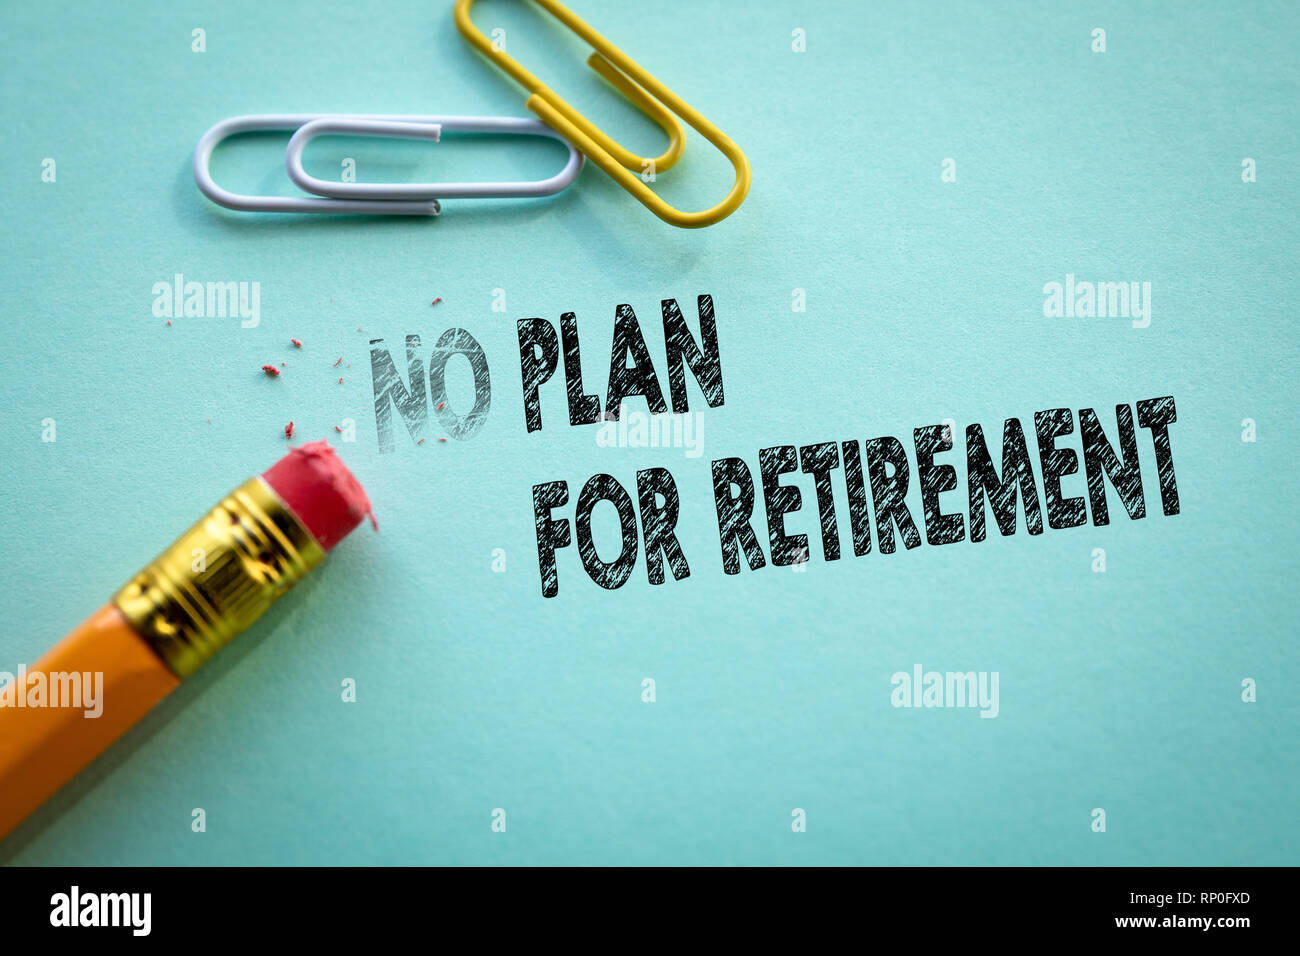 Making no in to plan for retirement by eraser - Stock Image